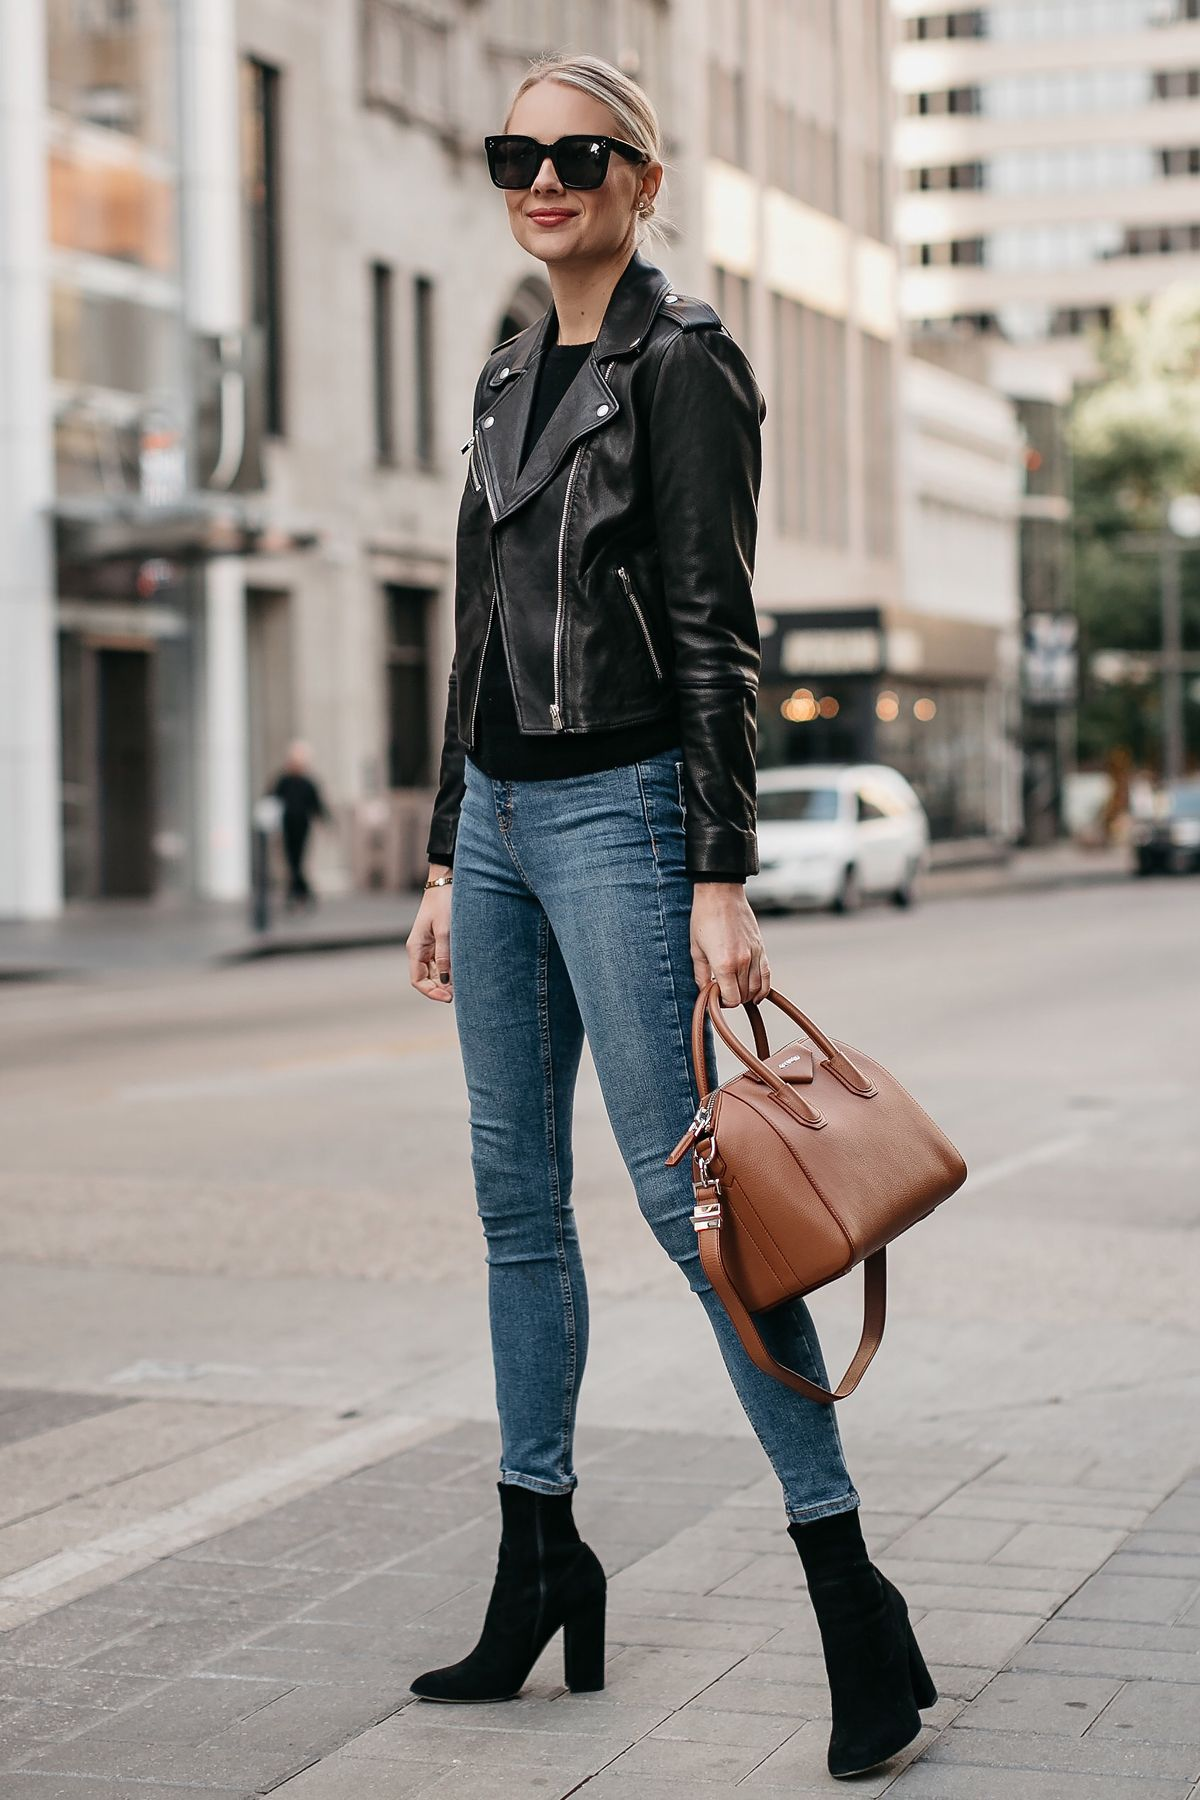 ca17665d3b05 Blonde Woman Wearing Black Leather Jacket Denim Skinny Jeans Black Booties  Givencny Antigona Cognac Satchel Fashion Jackson Dallas Blogger Fashion  Blogger ...